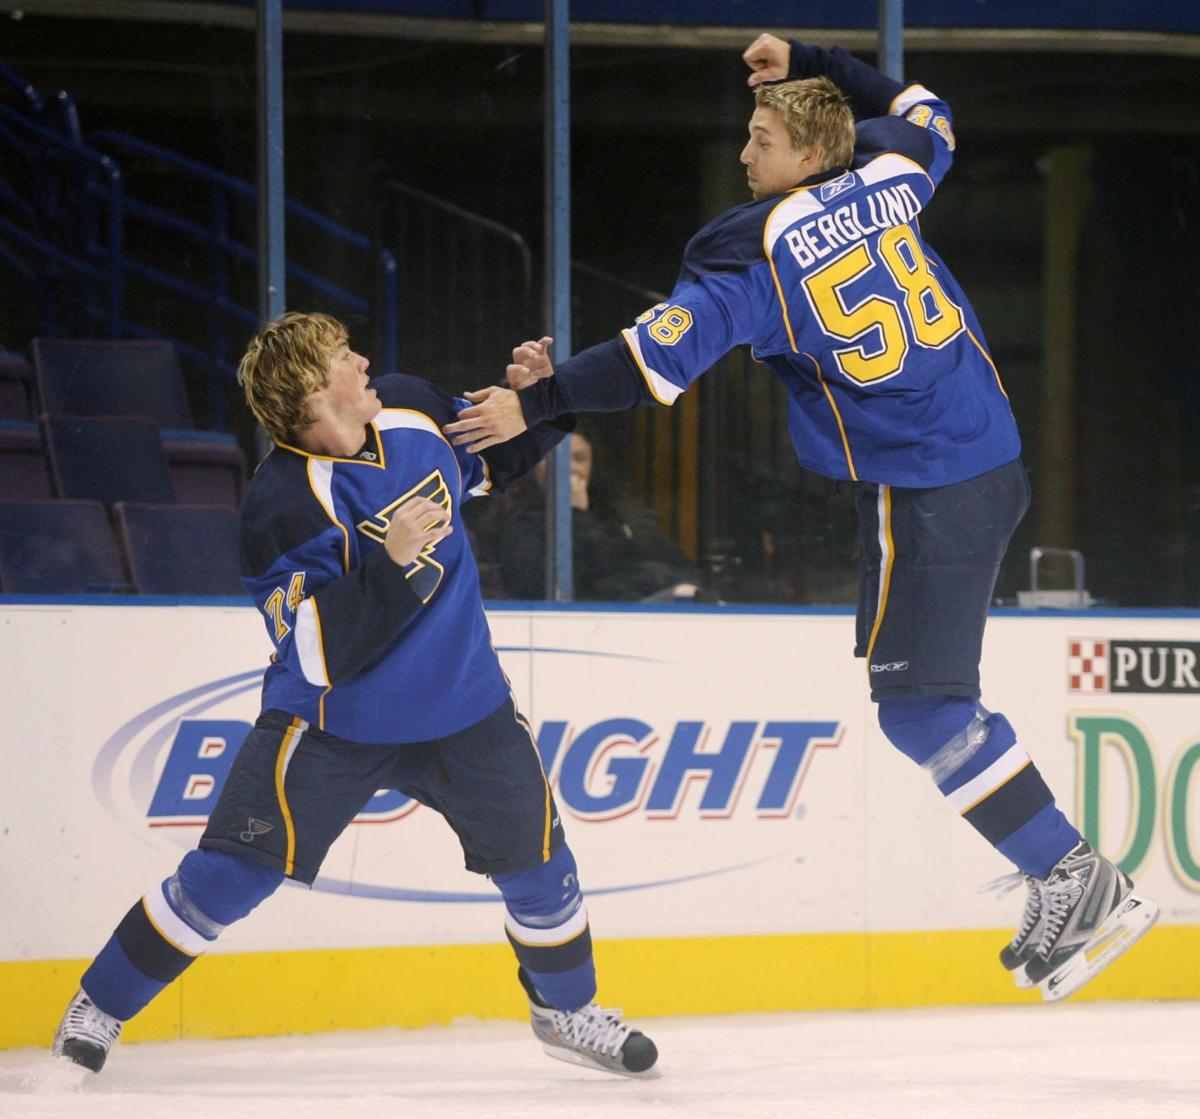 From promising Blues rookie to trade fodder, a look at the Berglund era in St. Louis